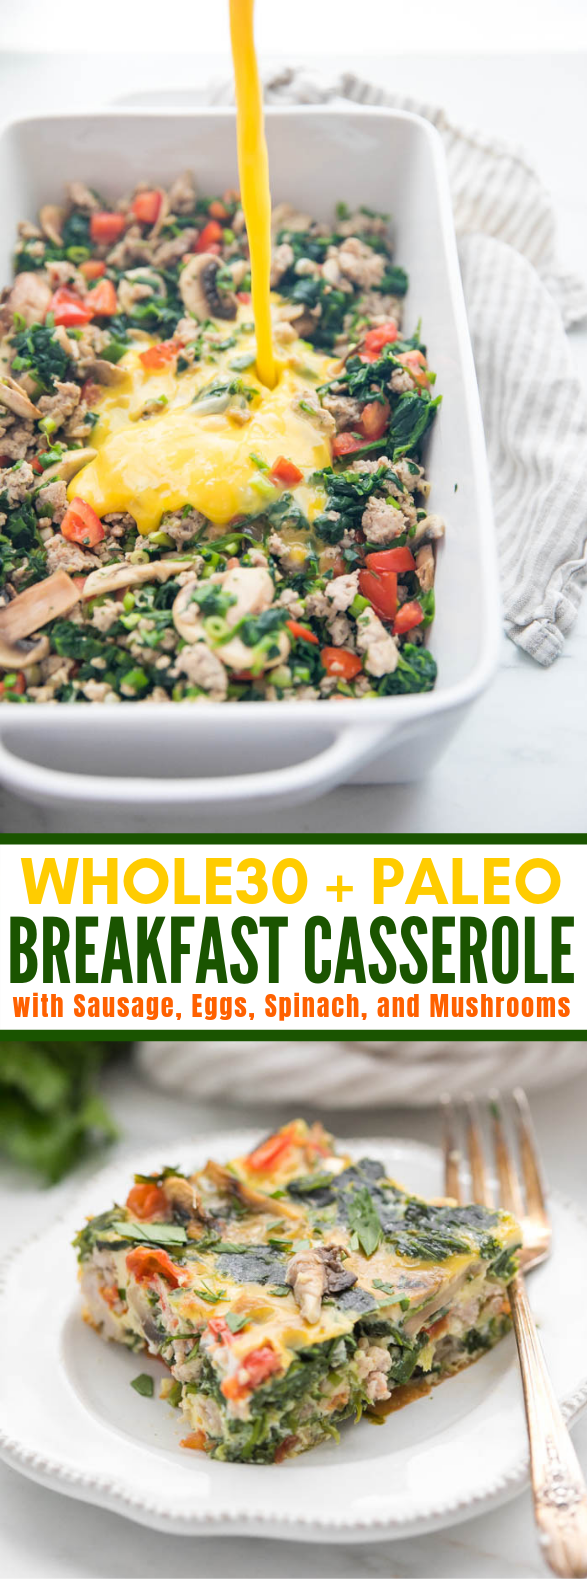 Whole30 Breakfast Casserole with Sausage, Eggs, Spinach, and Mushrooms (Keto) #healthydiet #glutenfree